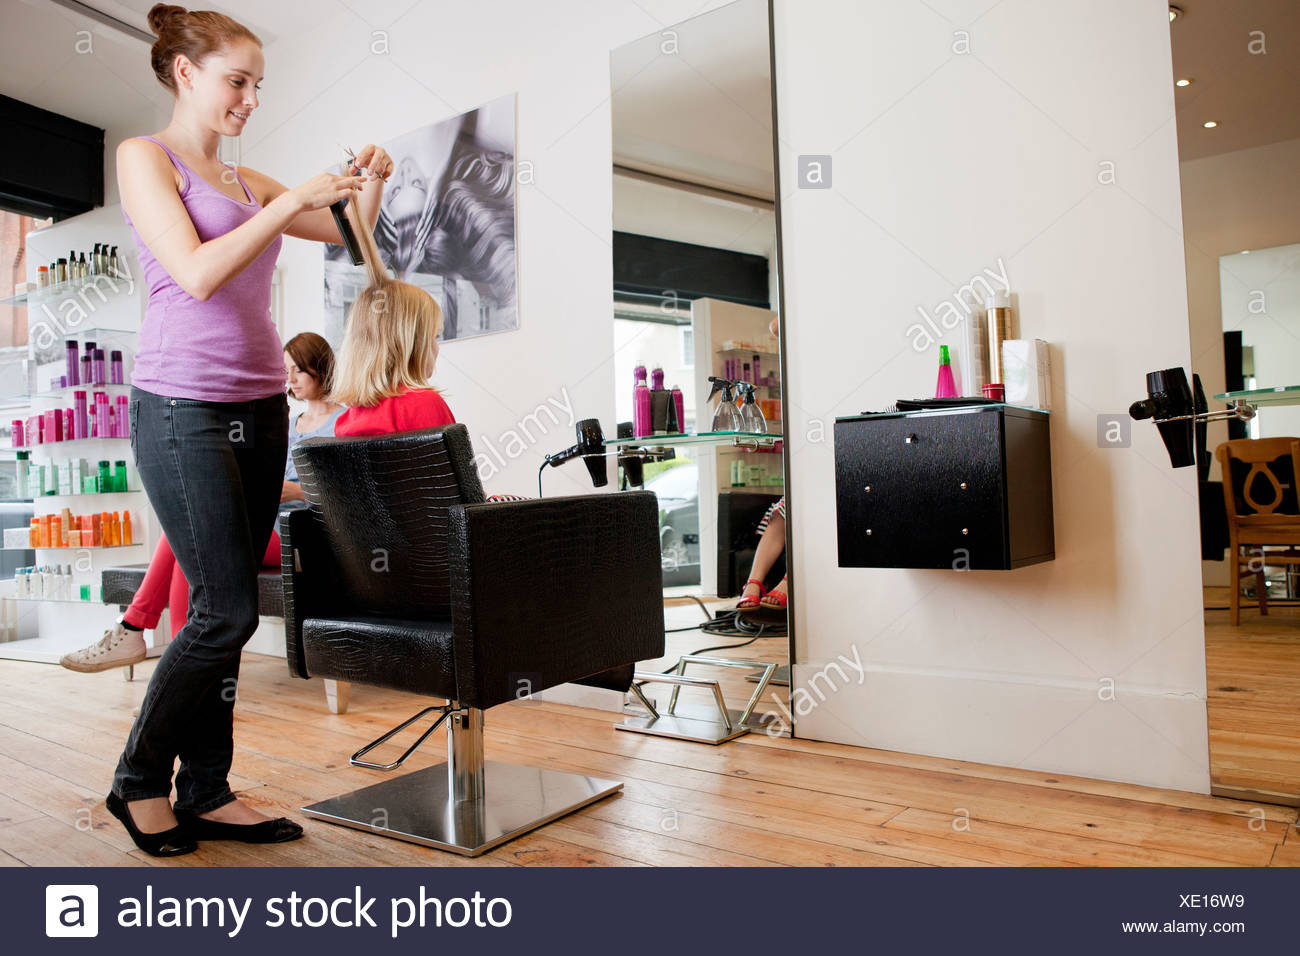 Hairdressing Salon A Female Hairdresser Cutting A Young Girls Hair In A Hairdressing